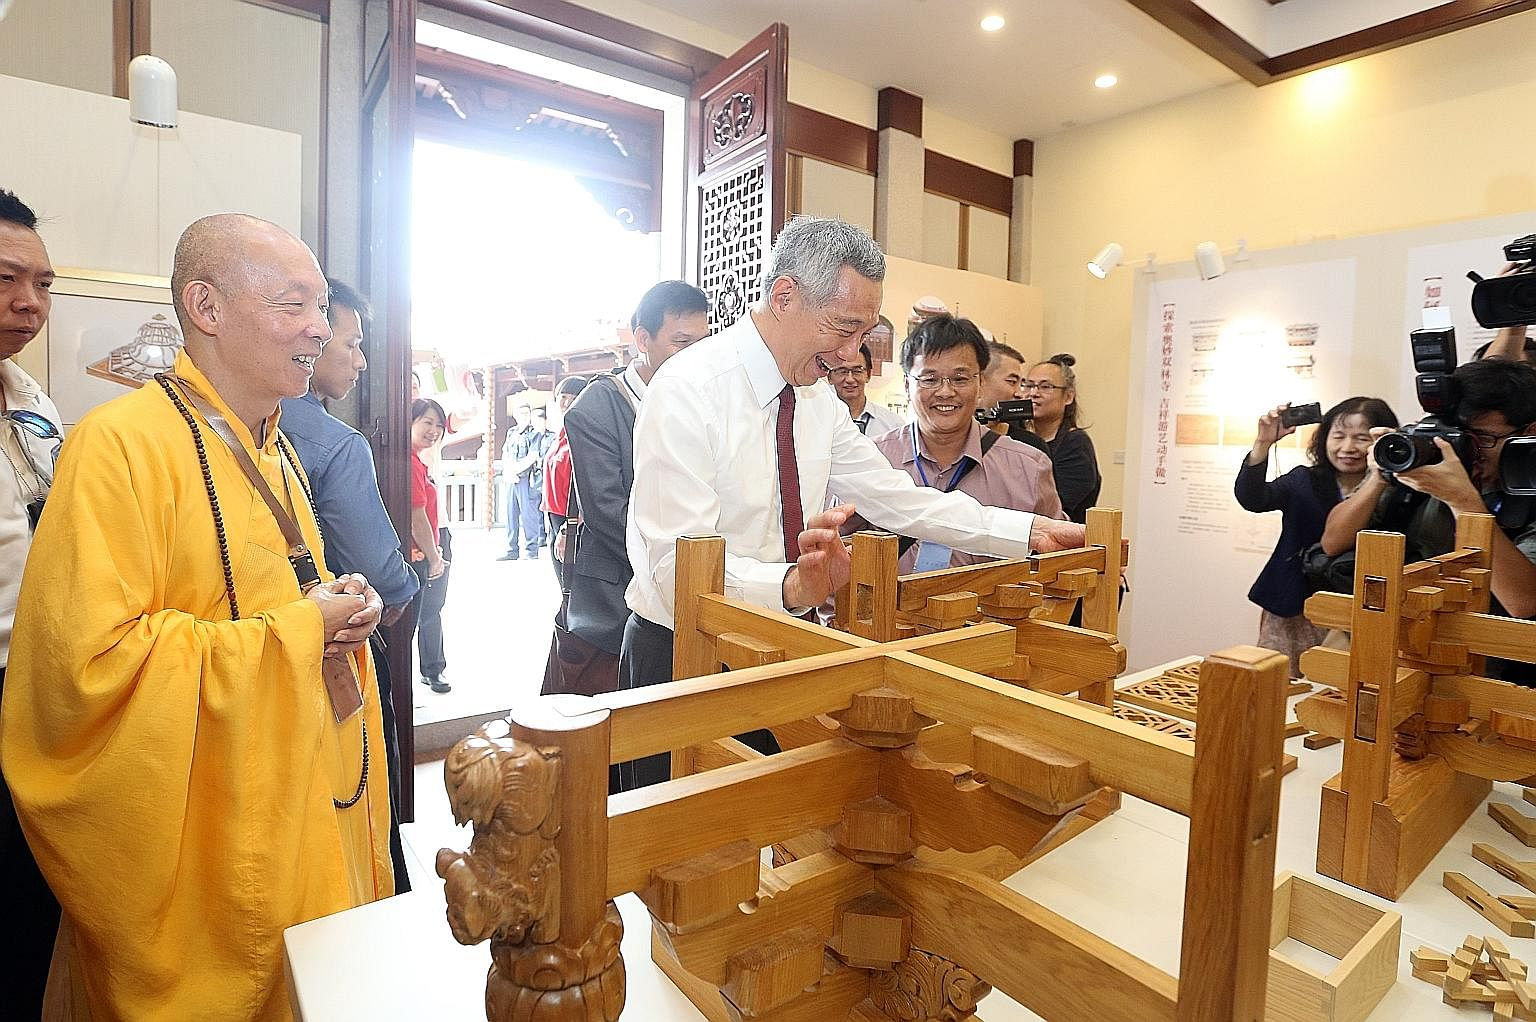 The Meditation Hall is among the new halls added in the $20 million second phase of the Lian Shan Shuang Lin Monastery's restoration programme. Left: PM Lee trying out the wooden structures in the Dharma Hall at the monastery in Kim Keat yeste